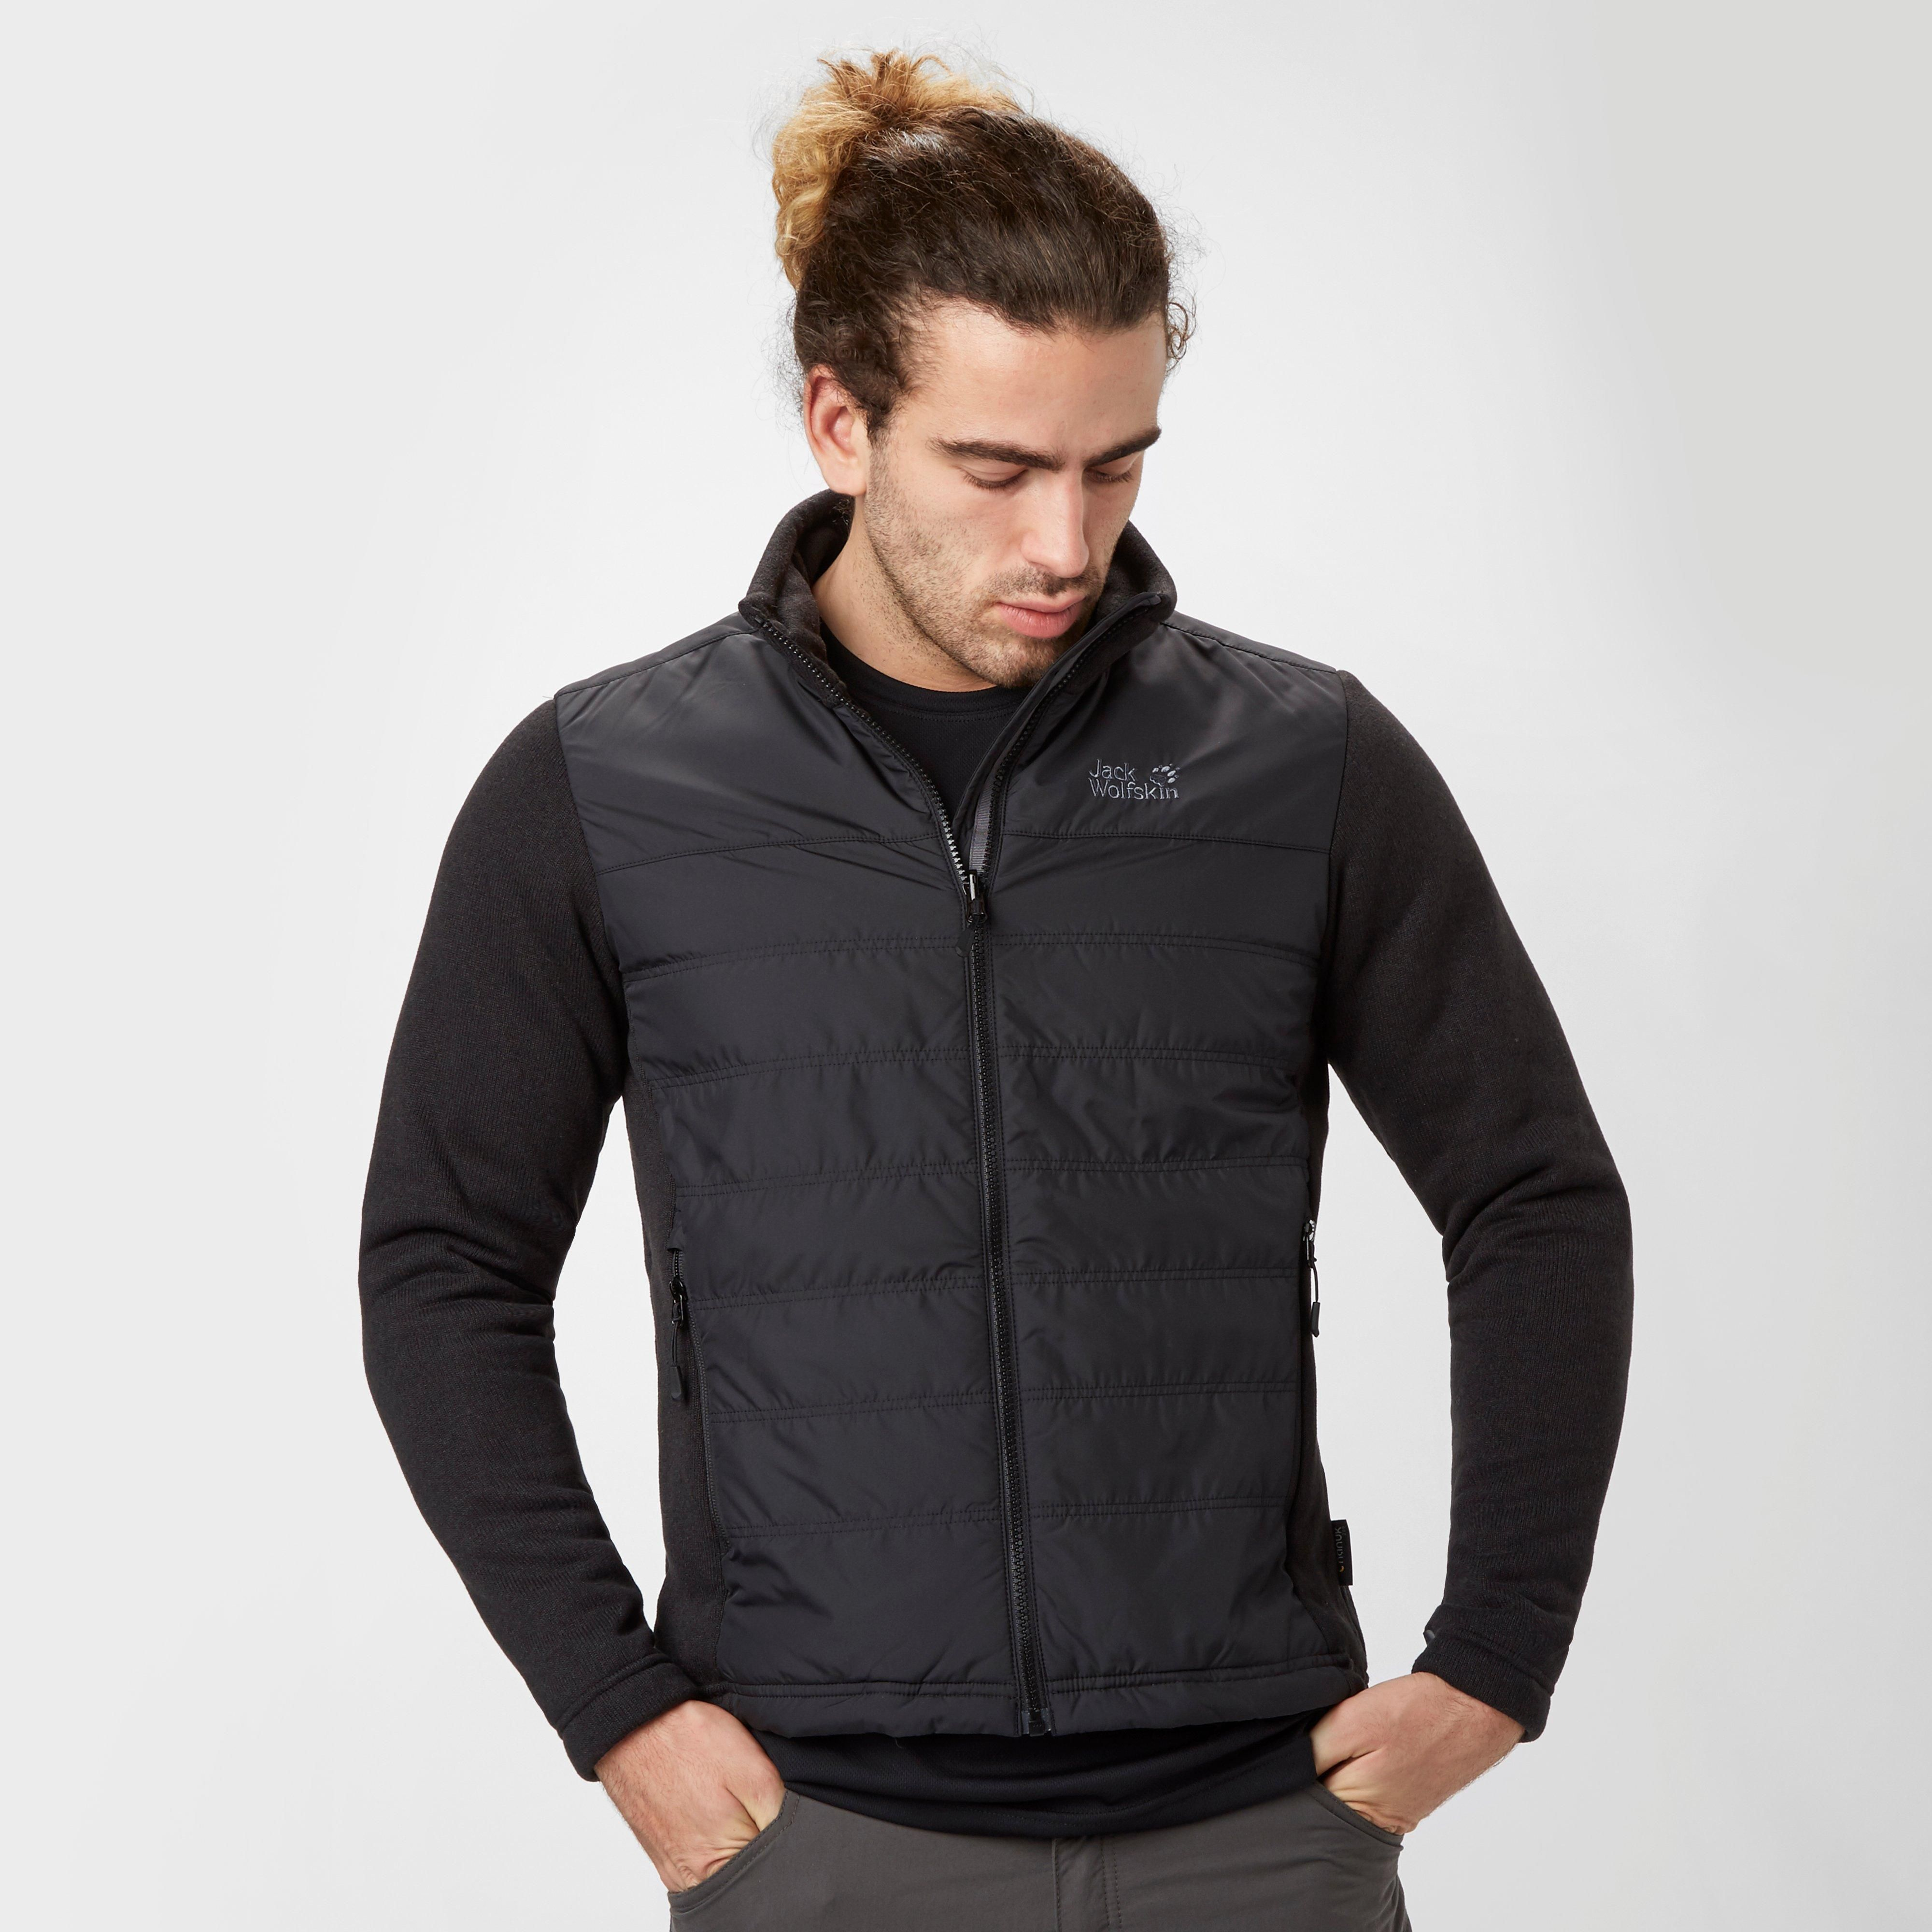 9903f607fe7 Men's Caribou Crossing Track Insulated Jacket | Amari | Jackets ...